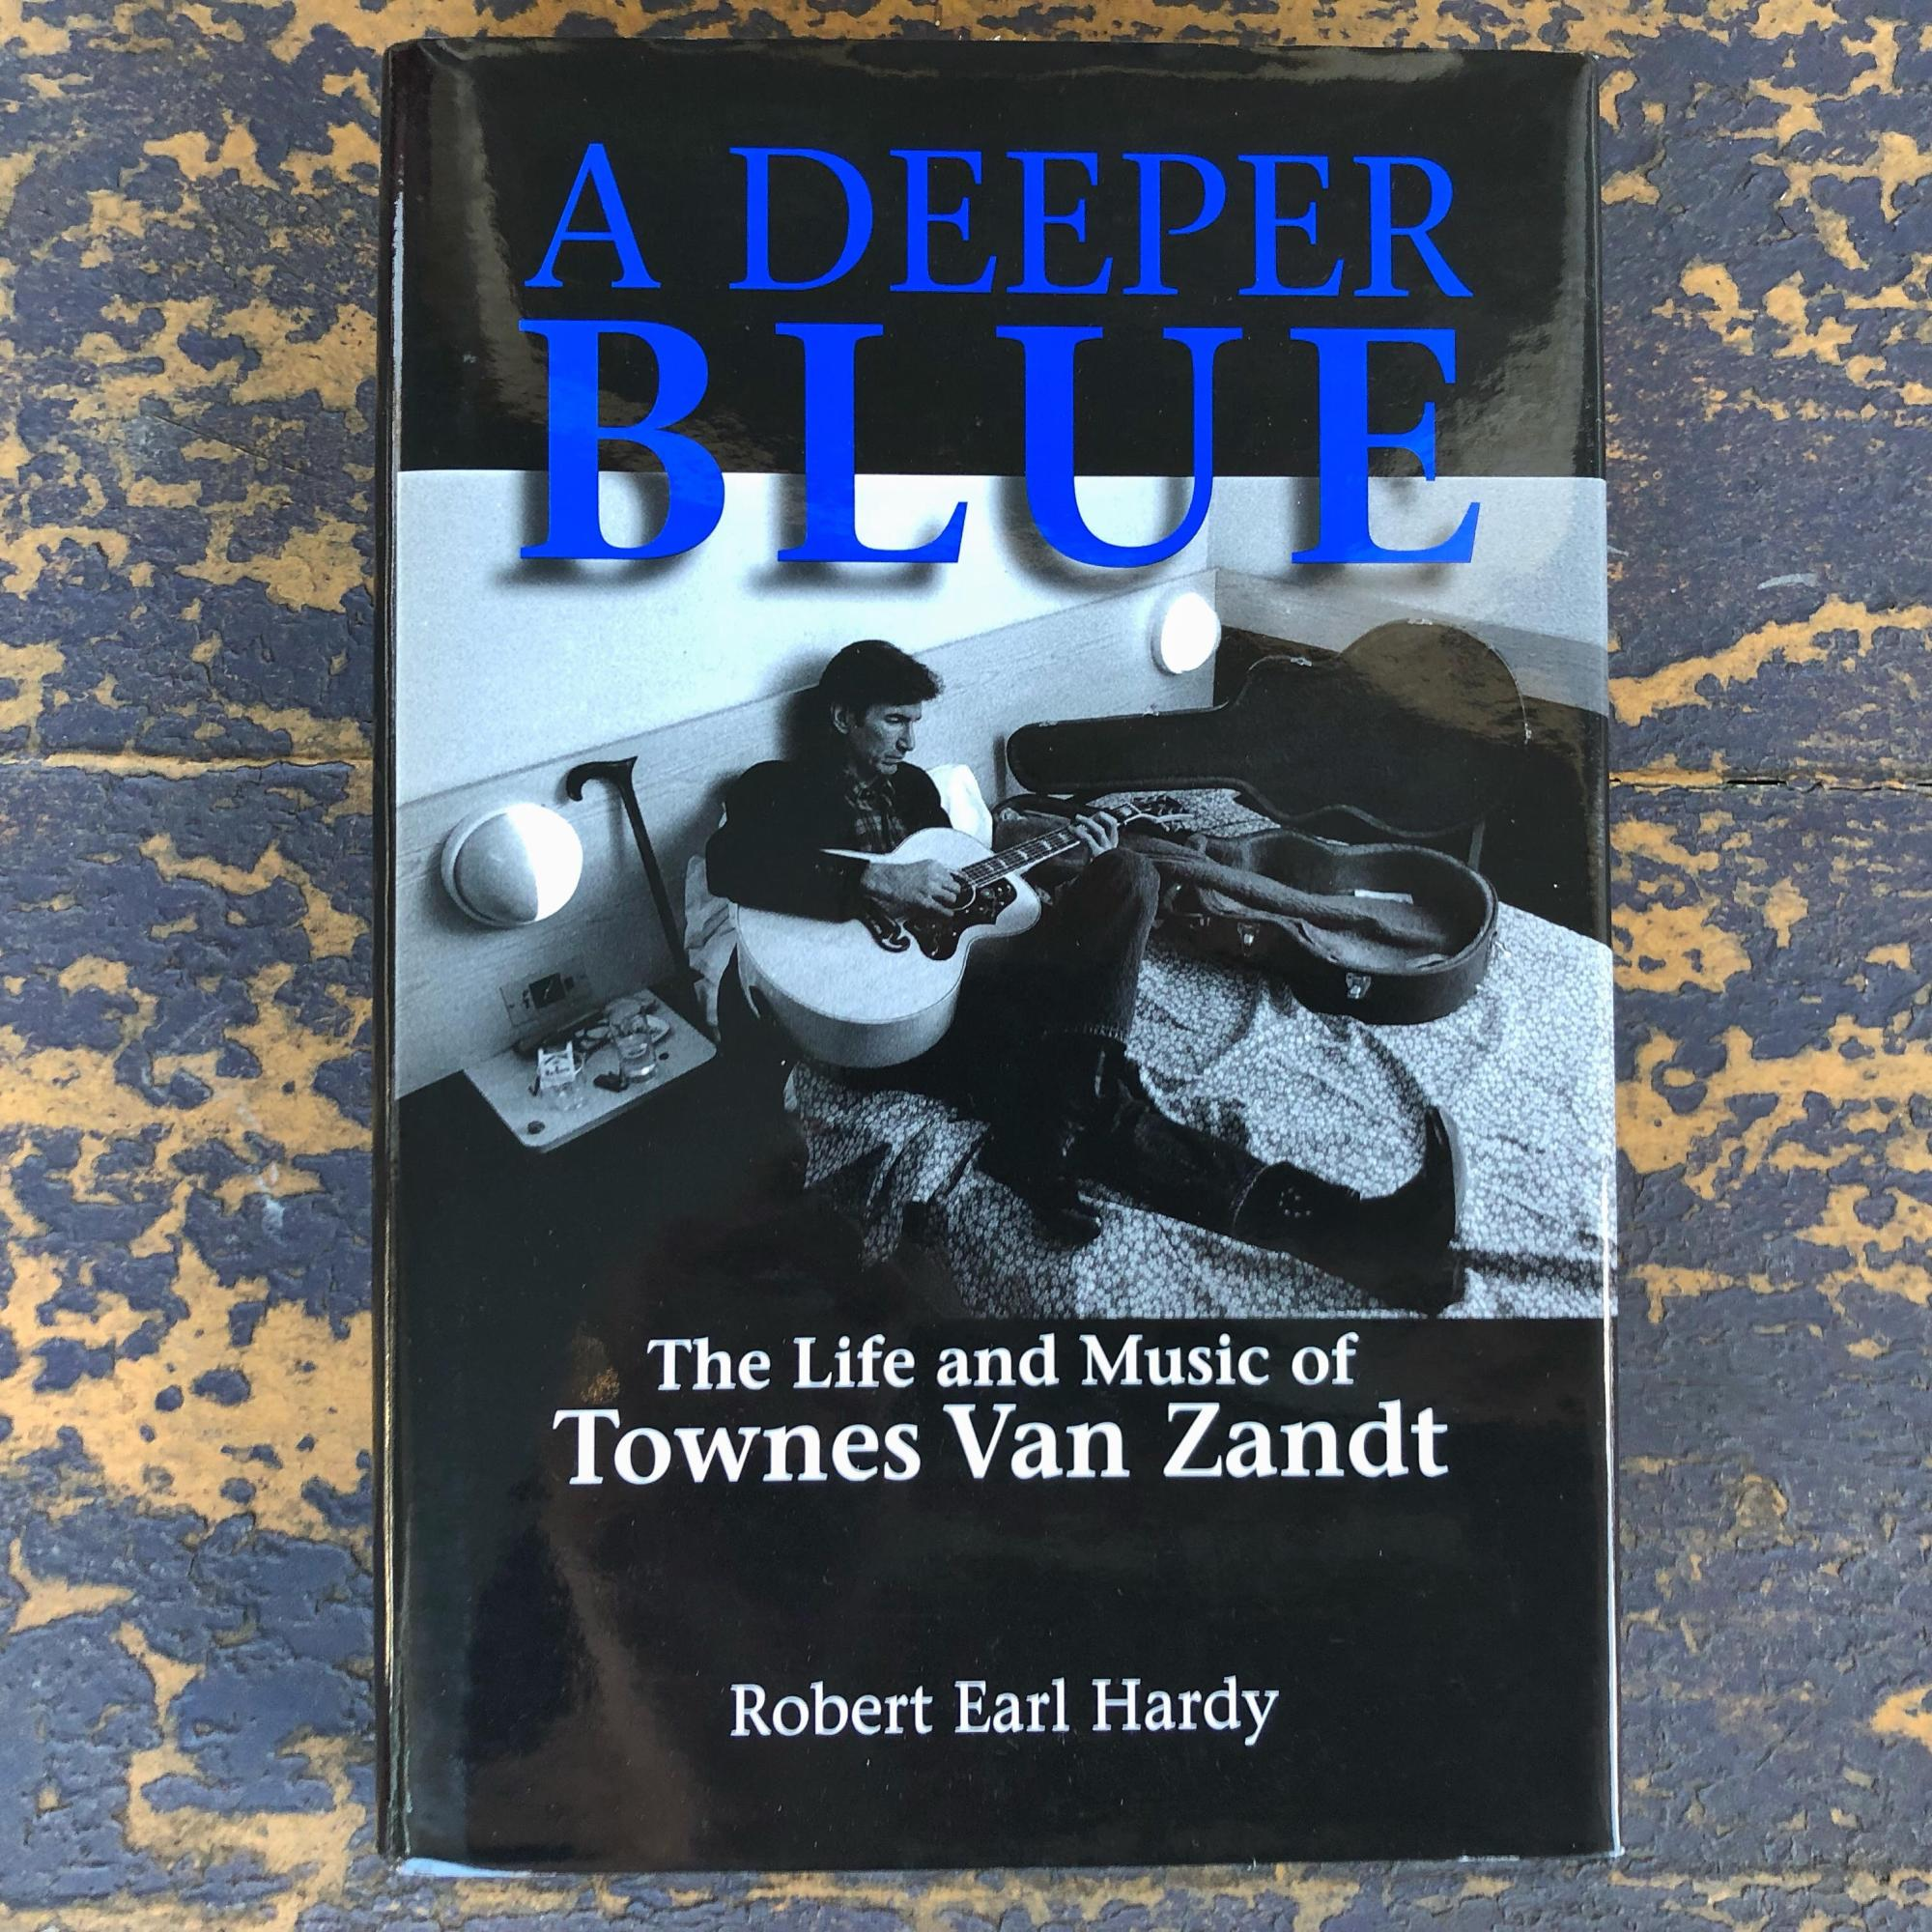 The Life and Music of Townes Van Zandt A Deeper Blue